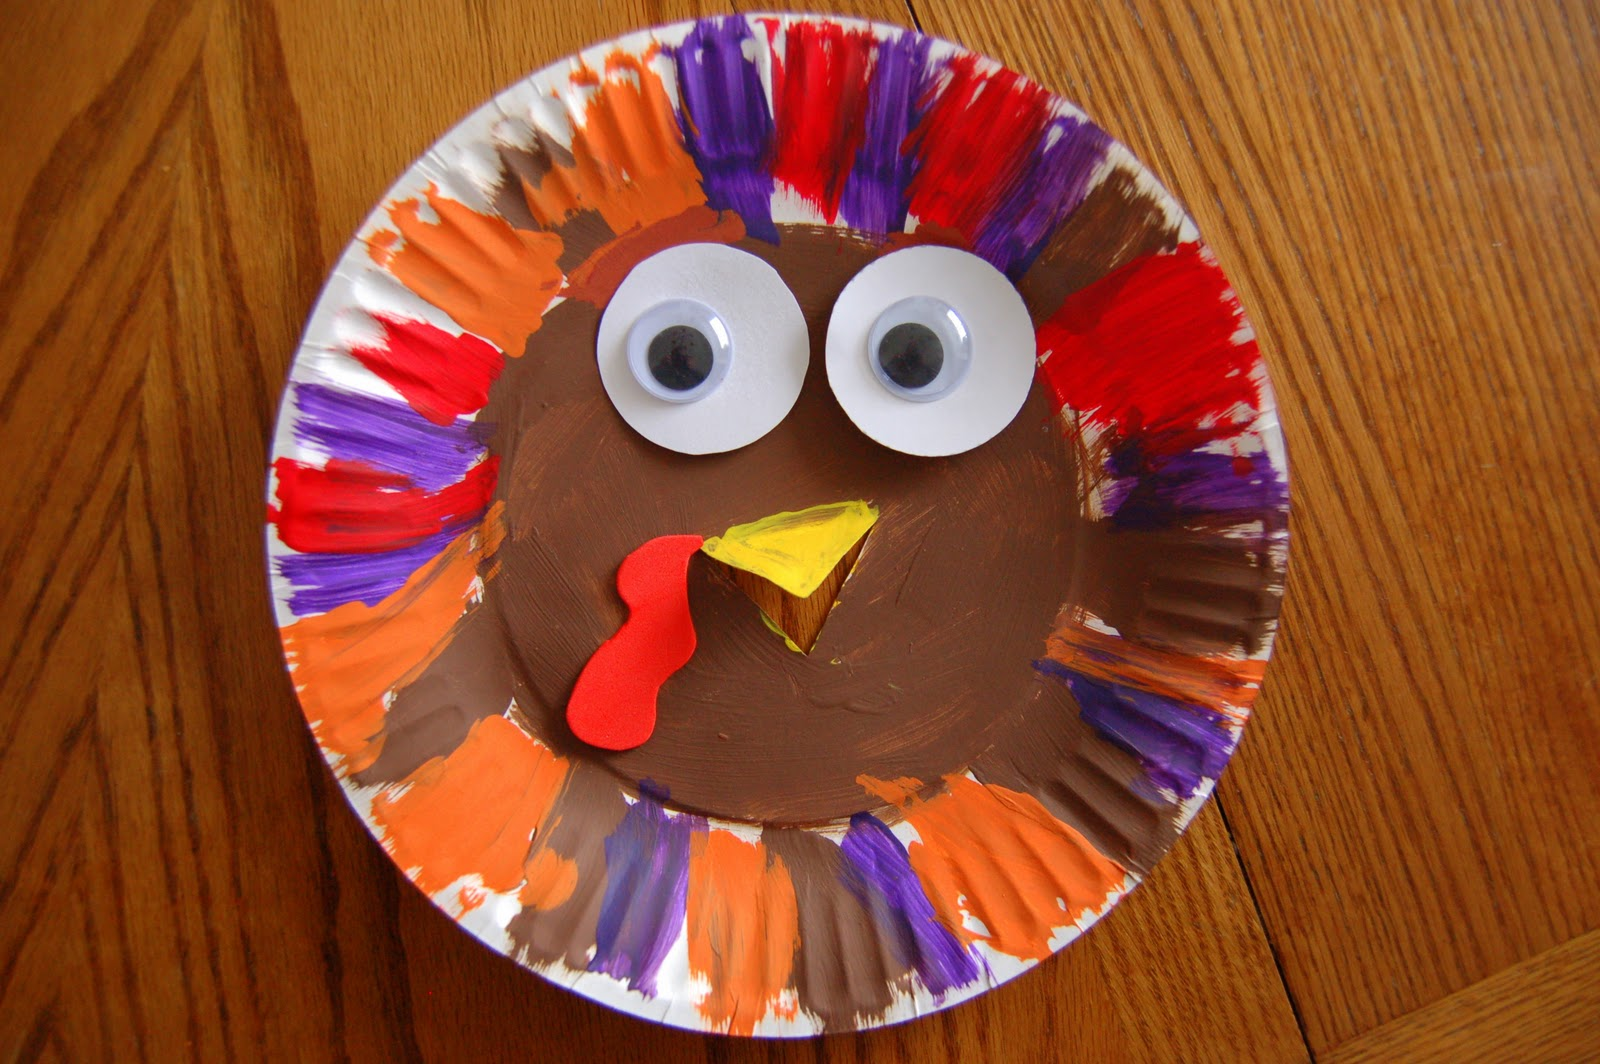 & Paper Plate Turkey | I Heart Crafty Things